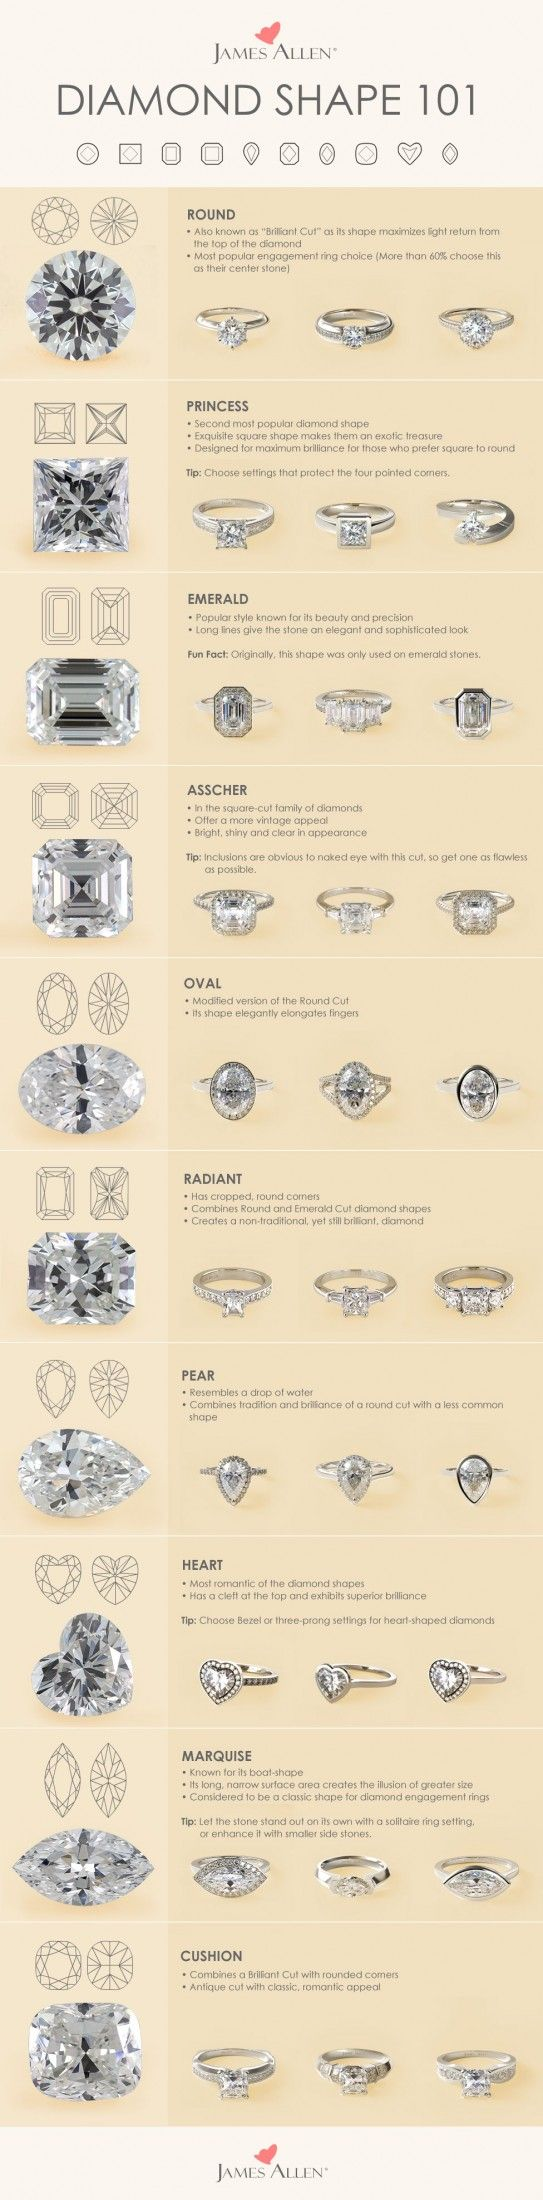 [Ad] Design your own engagement ring at James Allen. Visit now for more details!